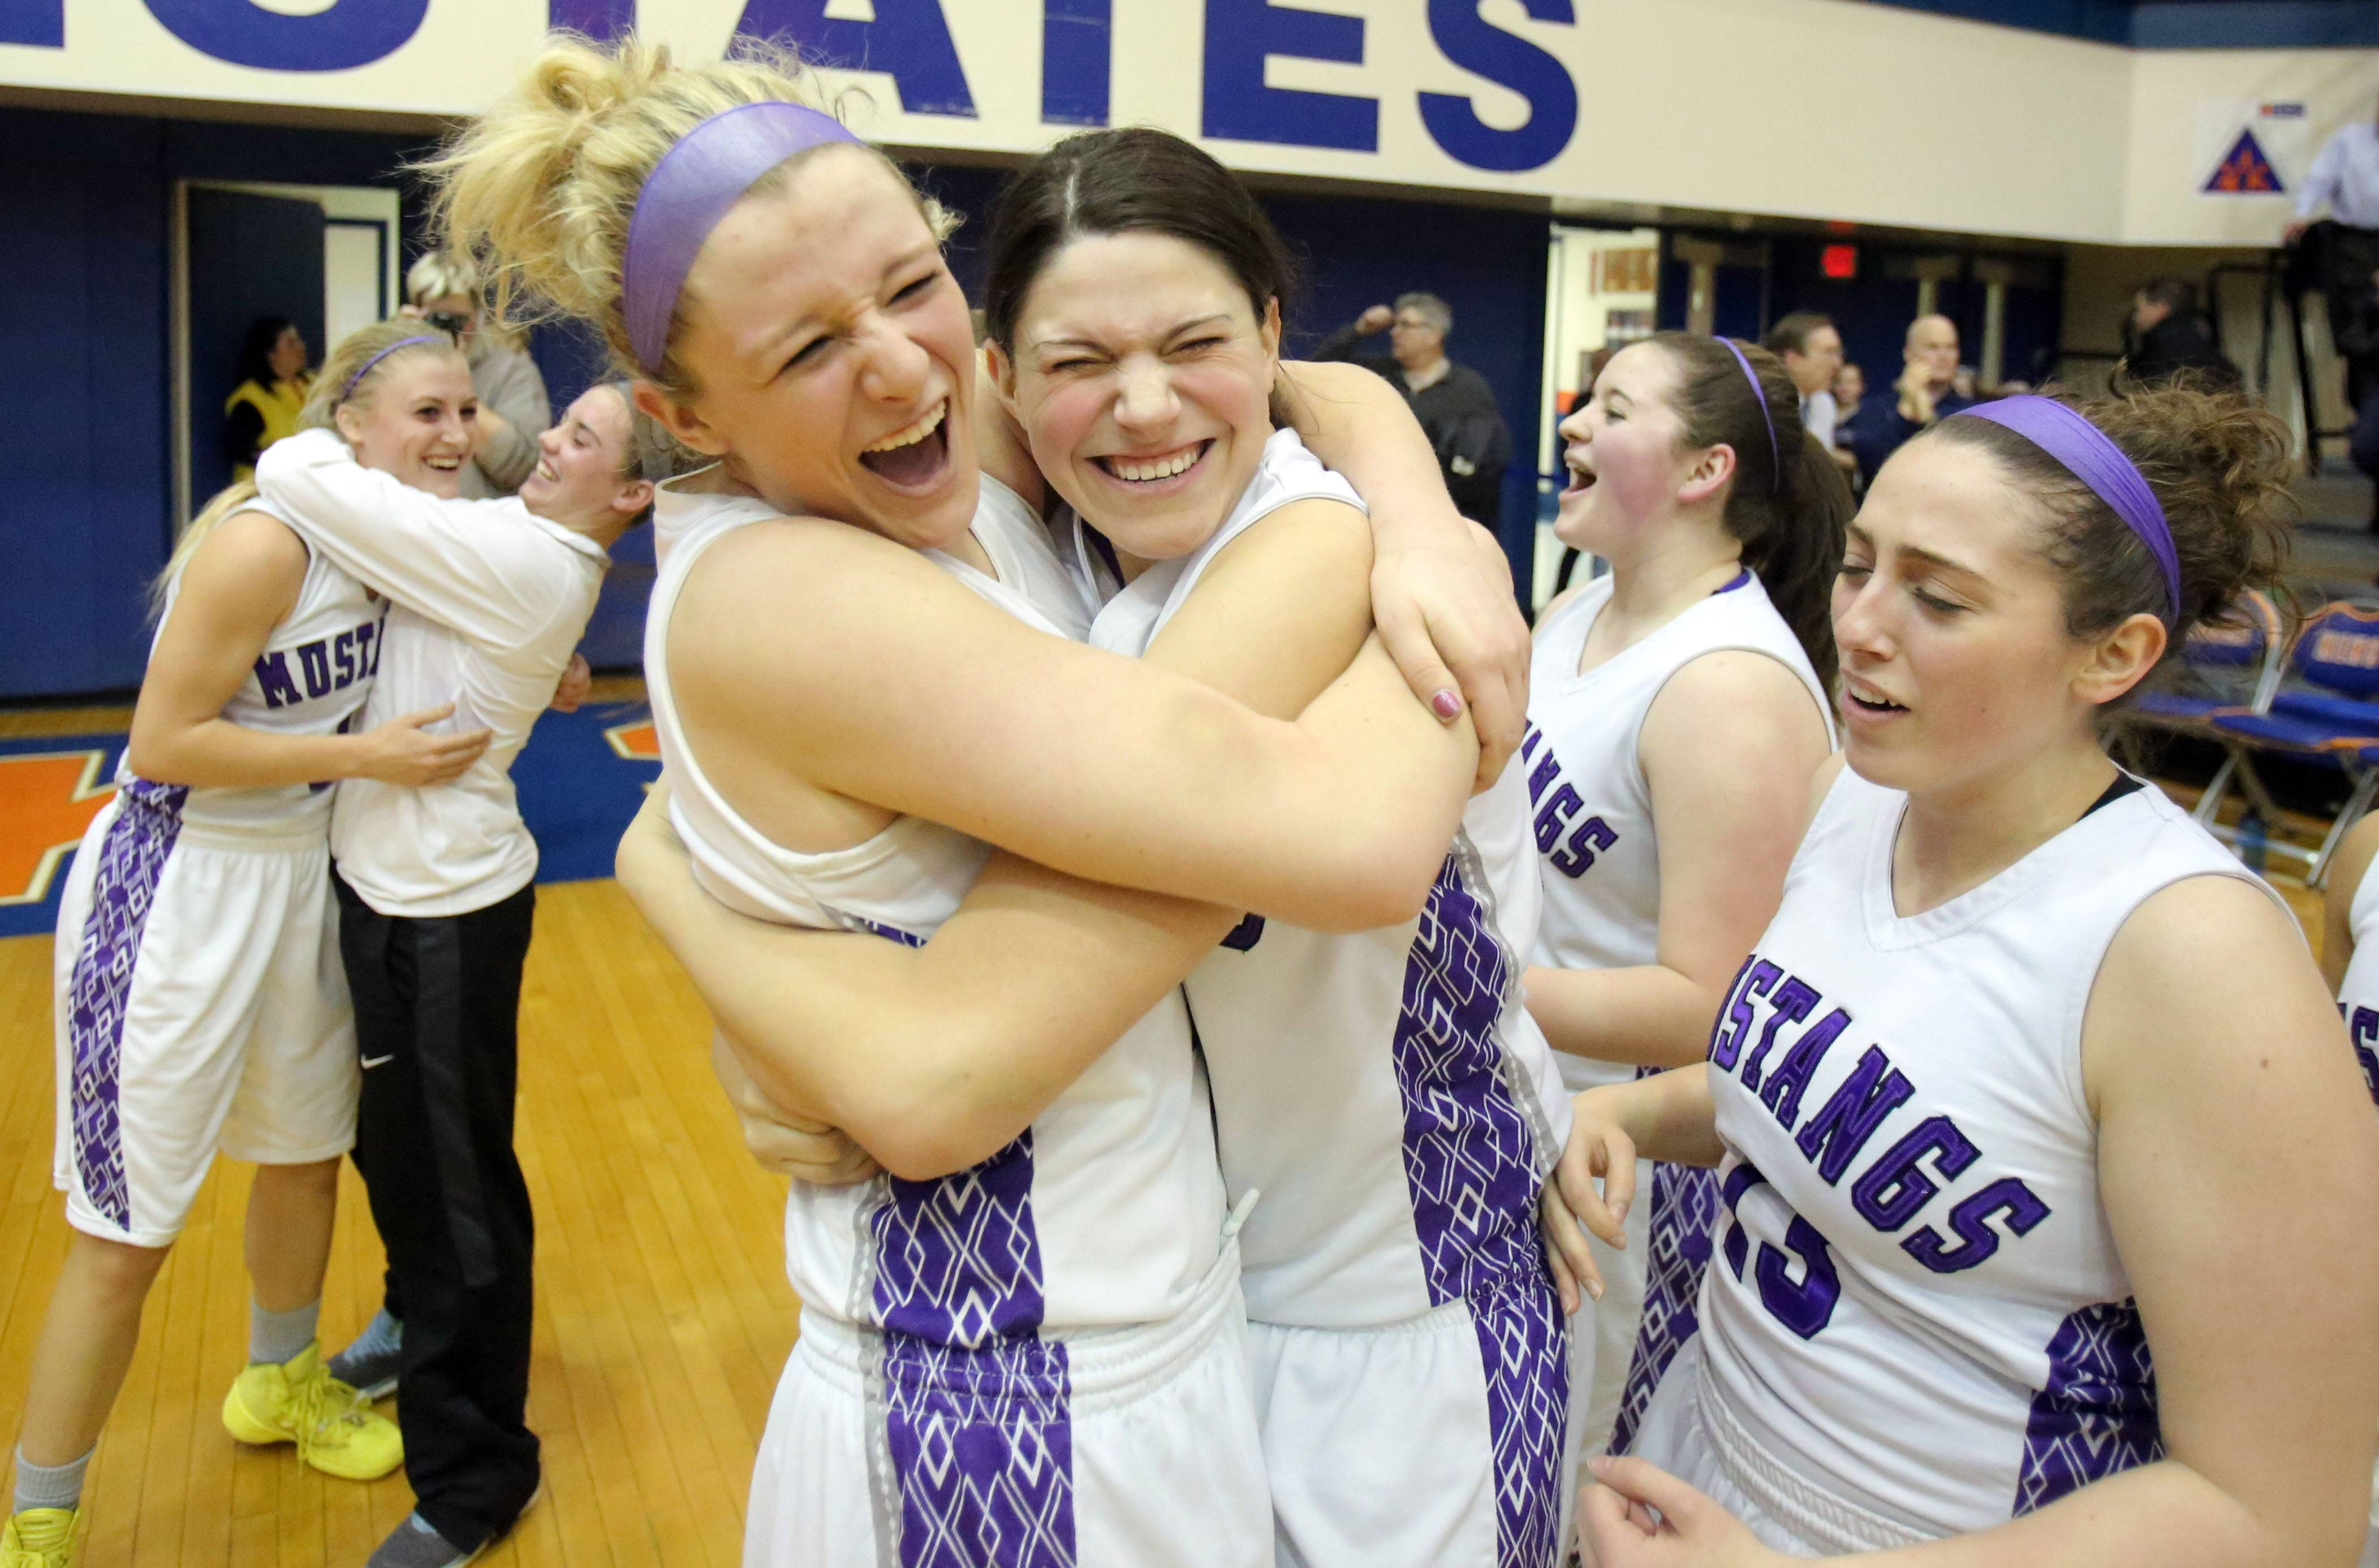 Rolling Meadows players celebrate their win over New Trier at Monday's Class 4A supersectional game at Hoffman Estates High School.